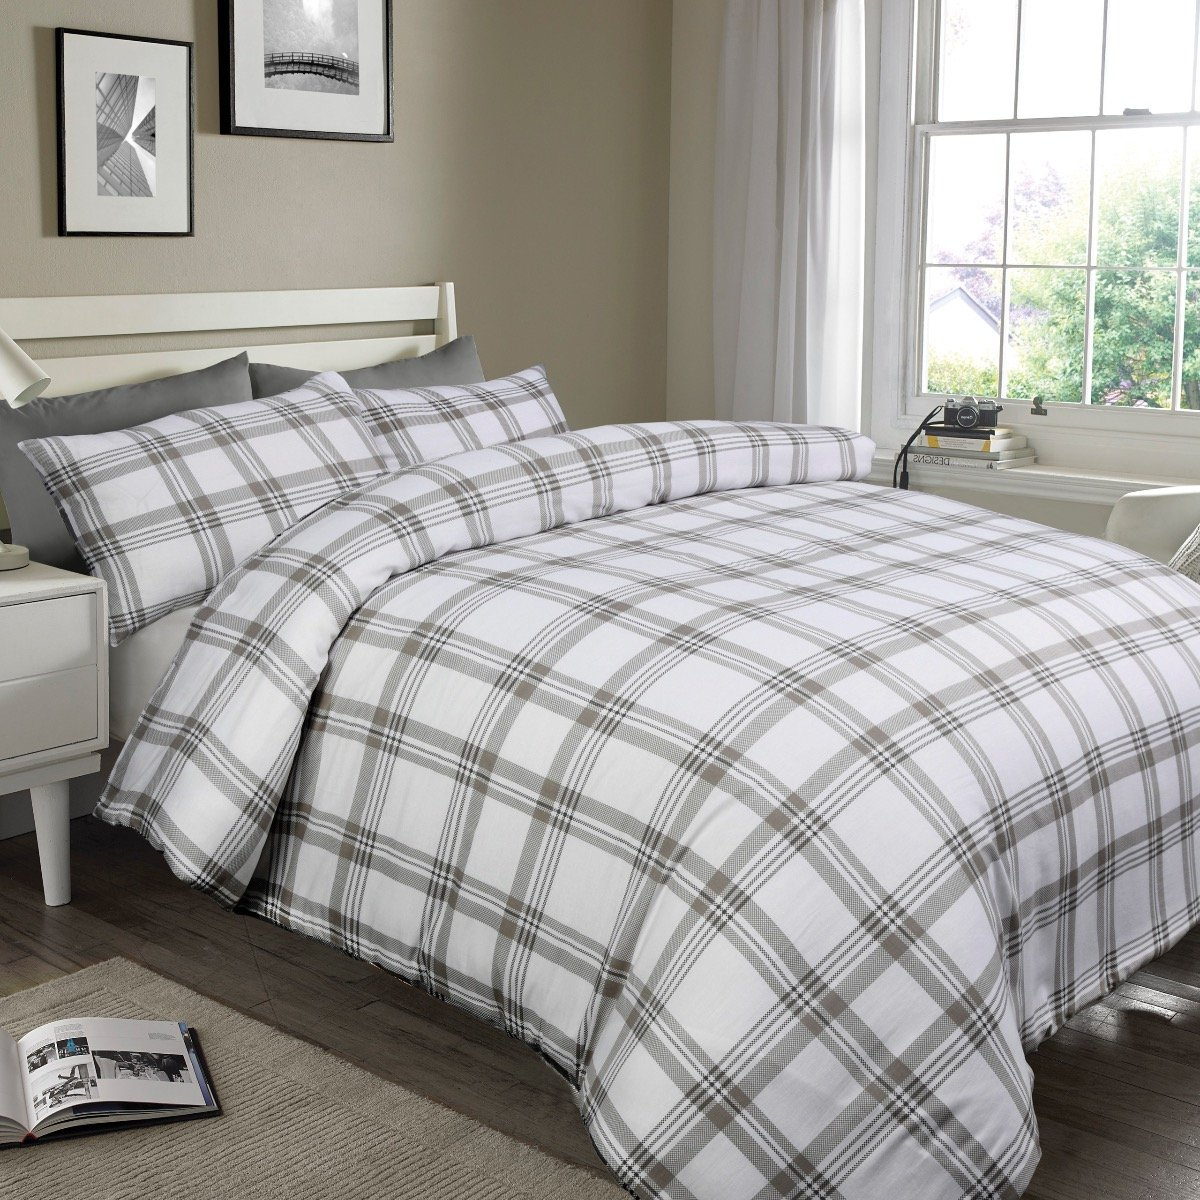 Check Grey Bedding - Reversible Duvet Cover and Pillowcase Set